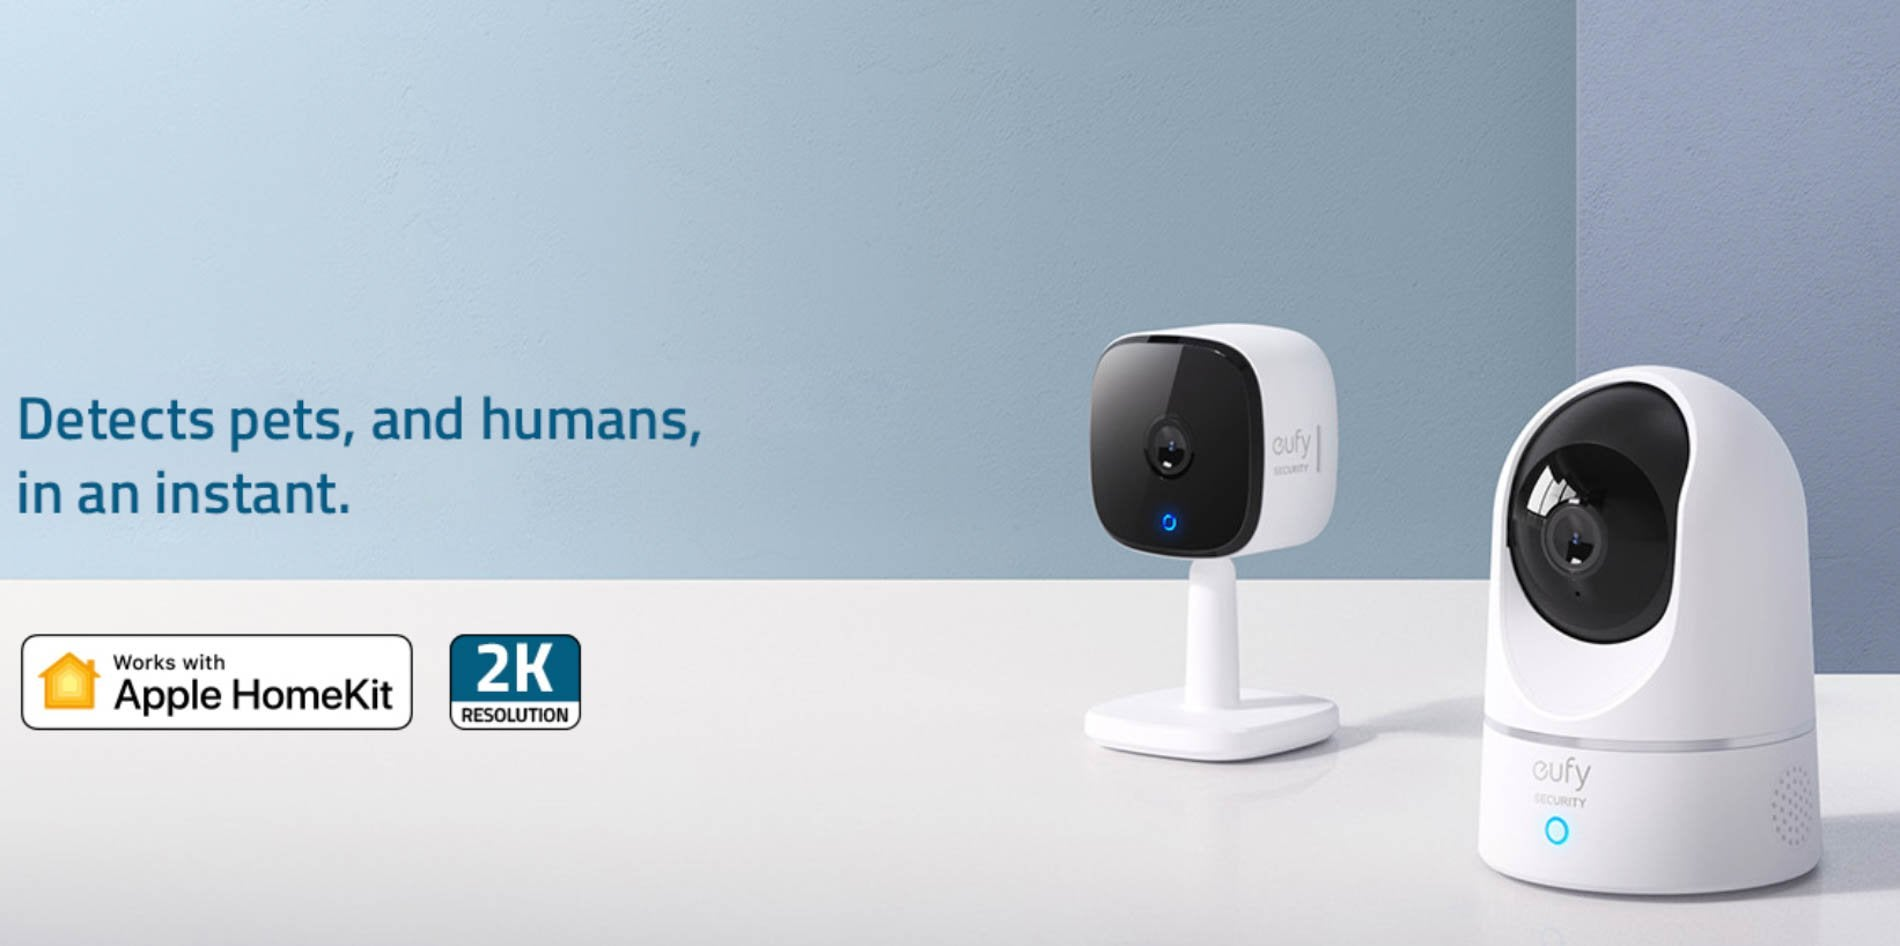 Eufy interior cams get HomeKit support you know that already